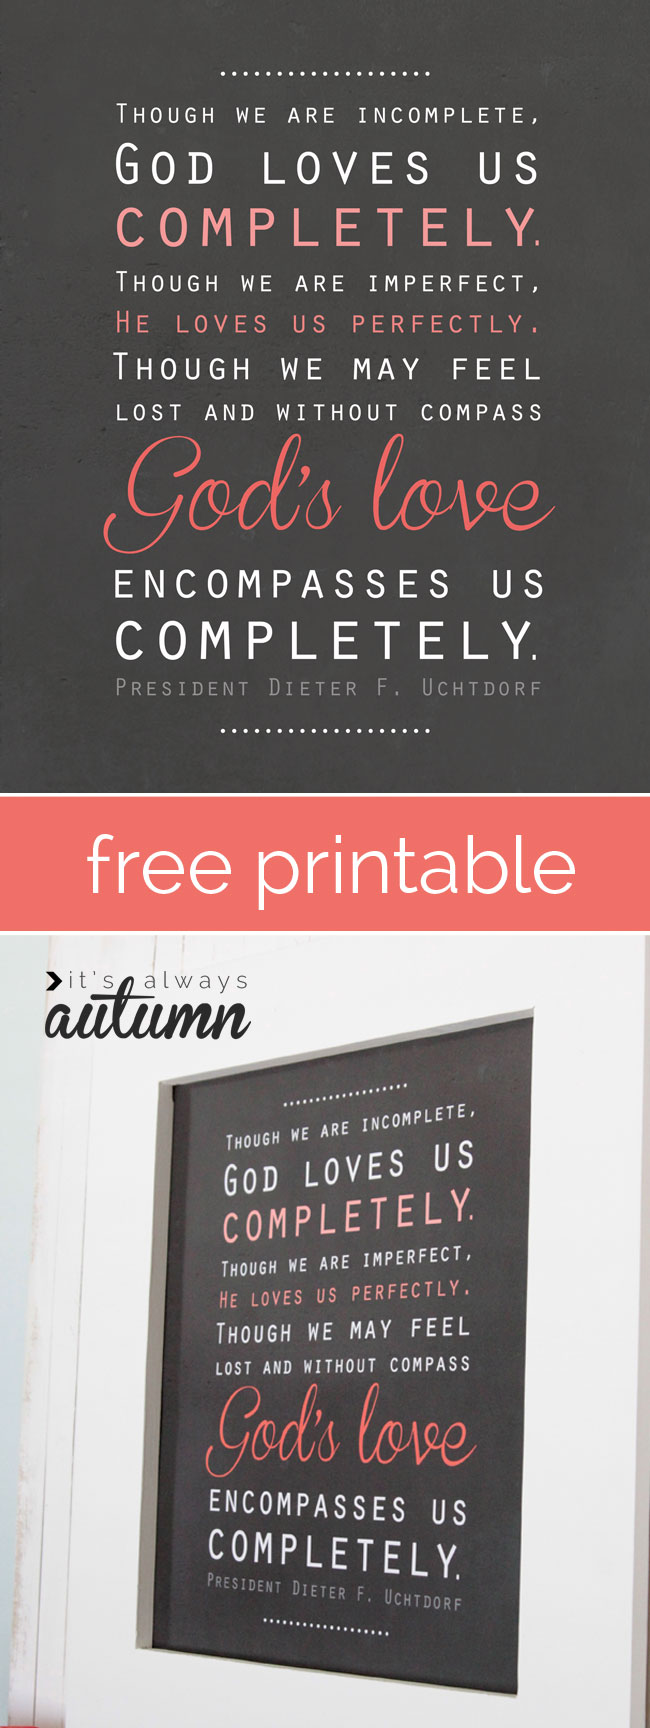 free lds mormon quote printable about God's love